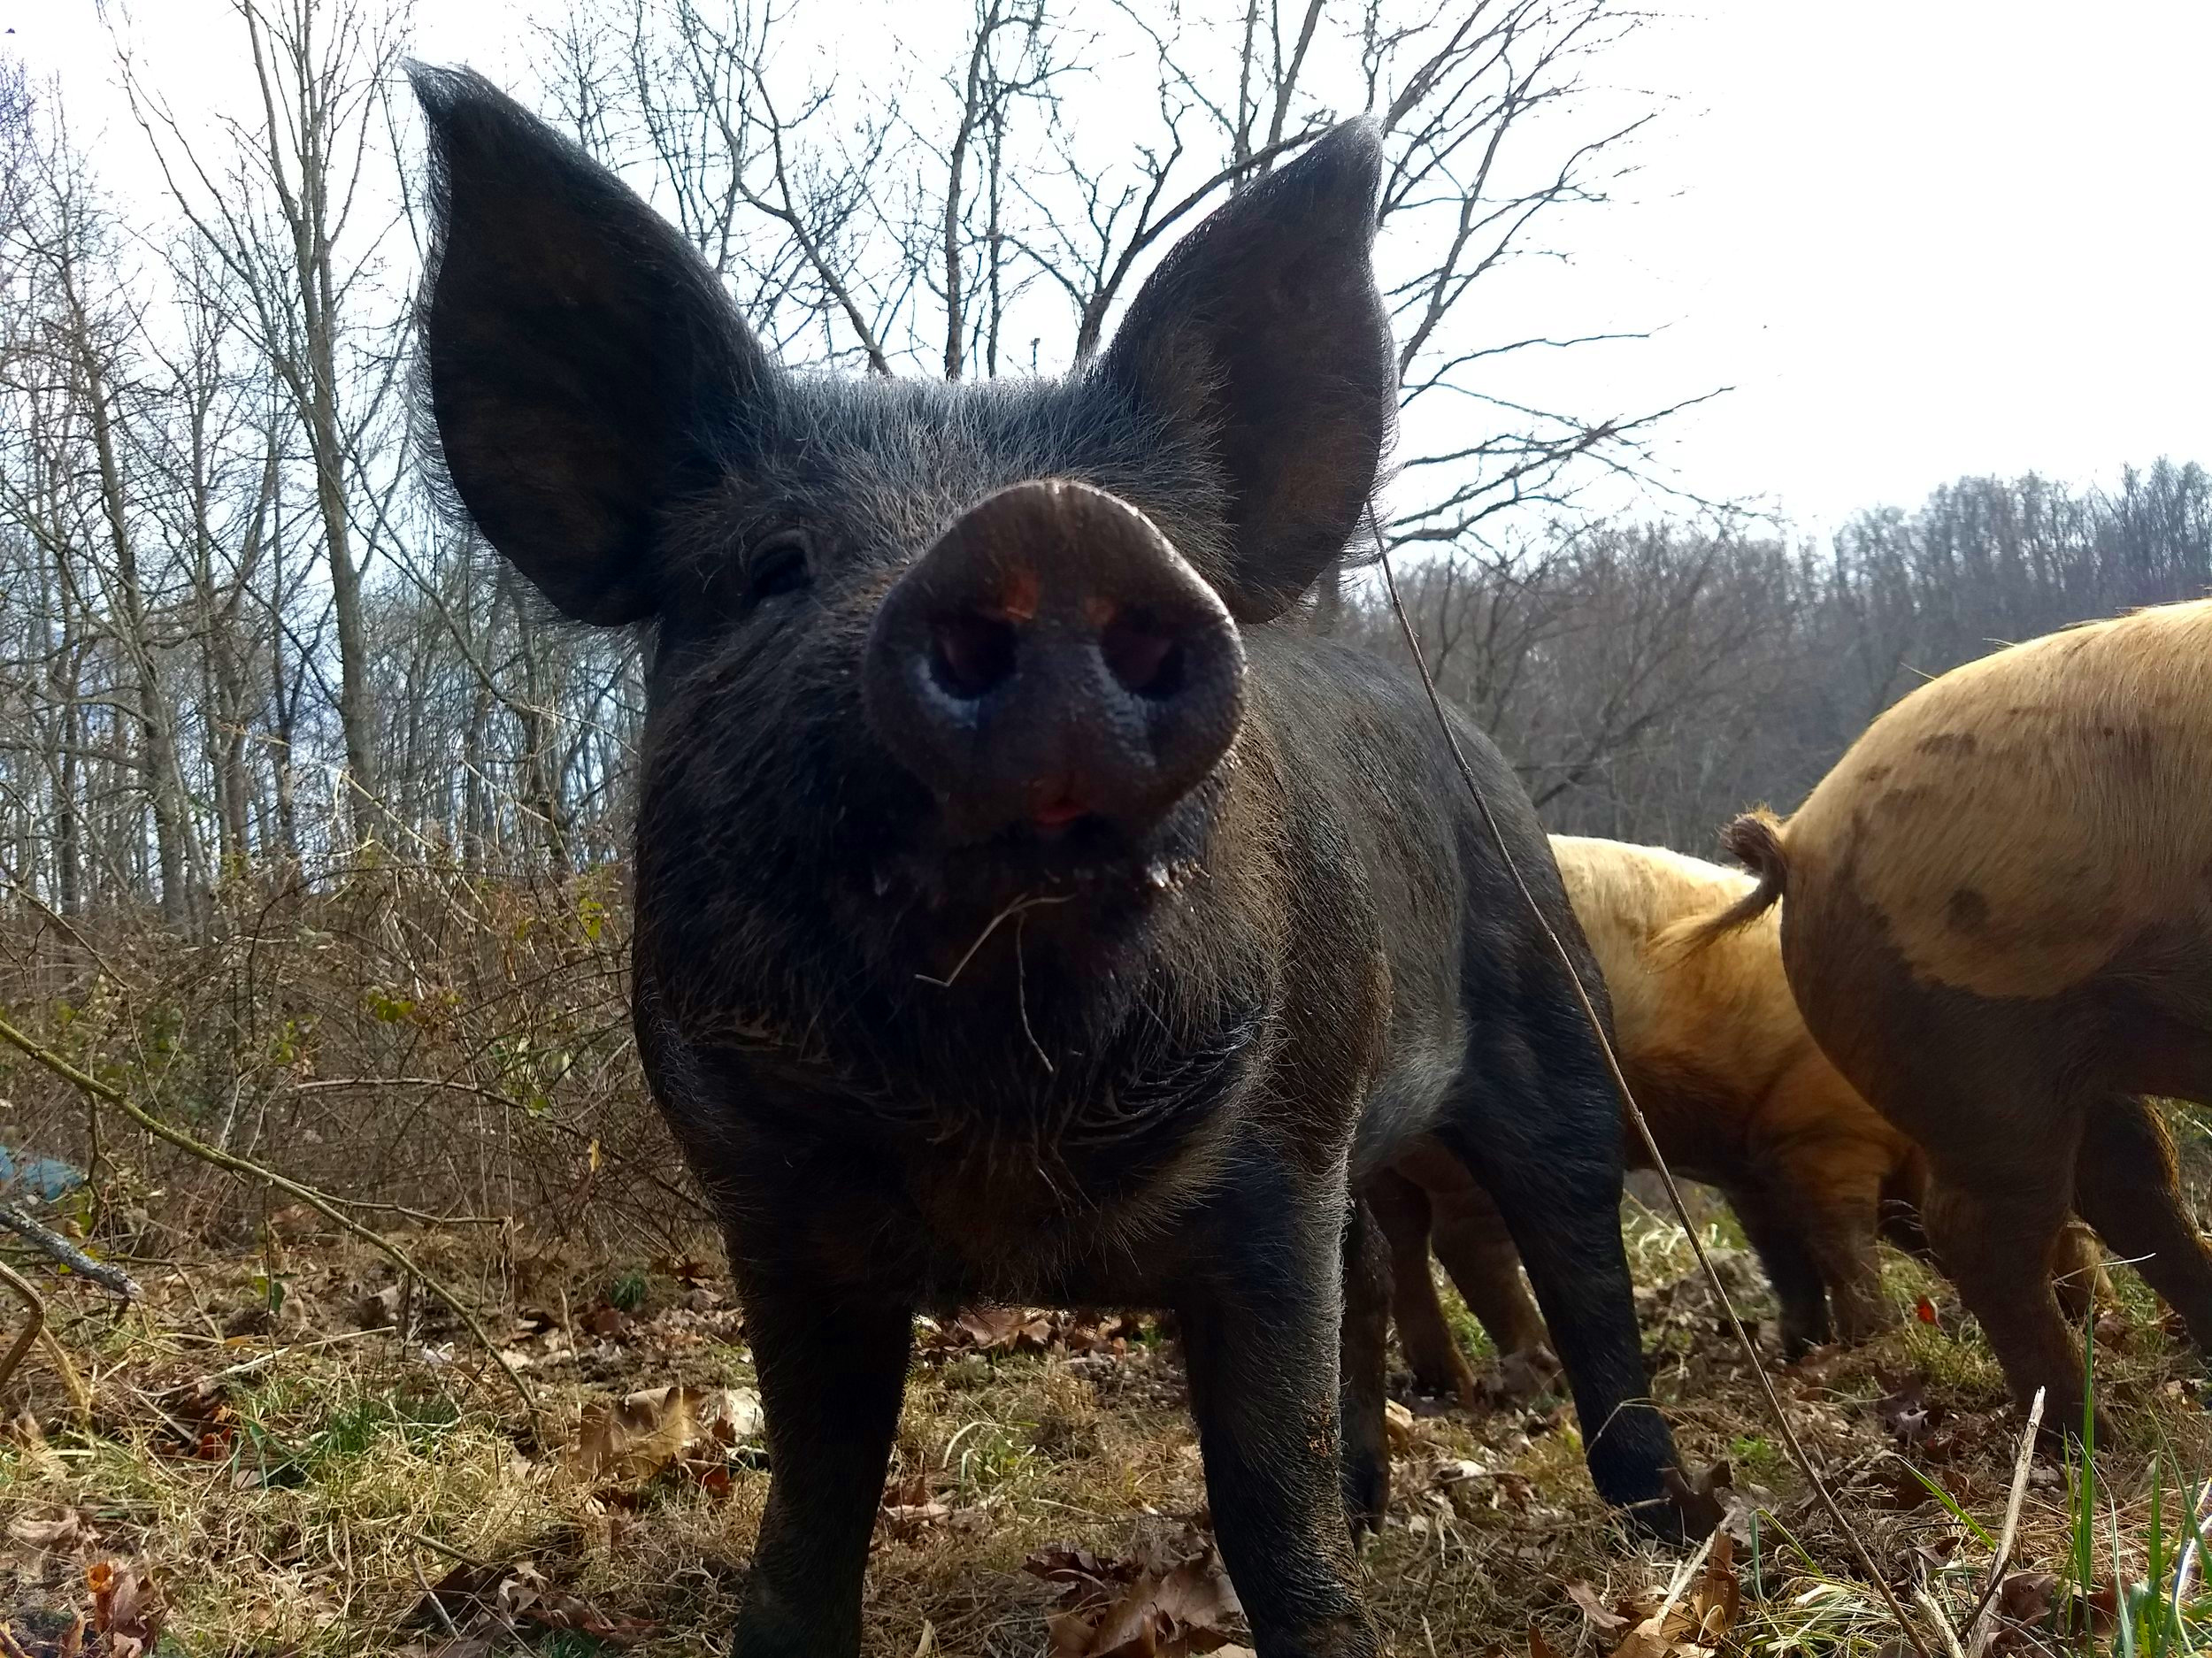 The Pigs - The piggies have done very well through this winter. They rooted up the field and foraged so much that we are going to have to give the field a rest for a little while.